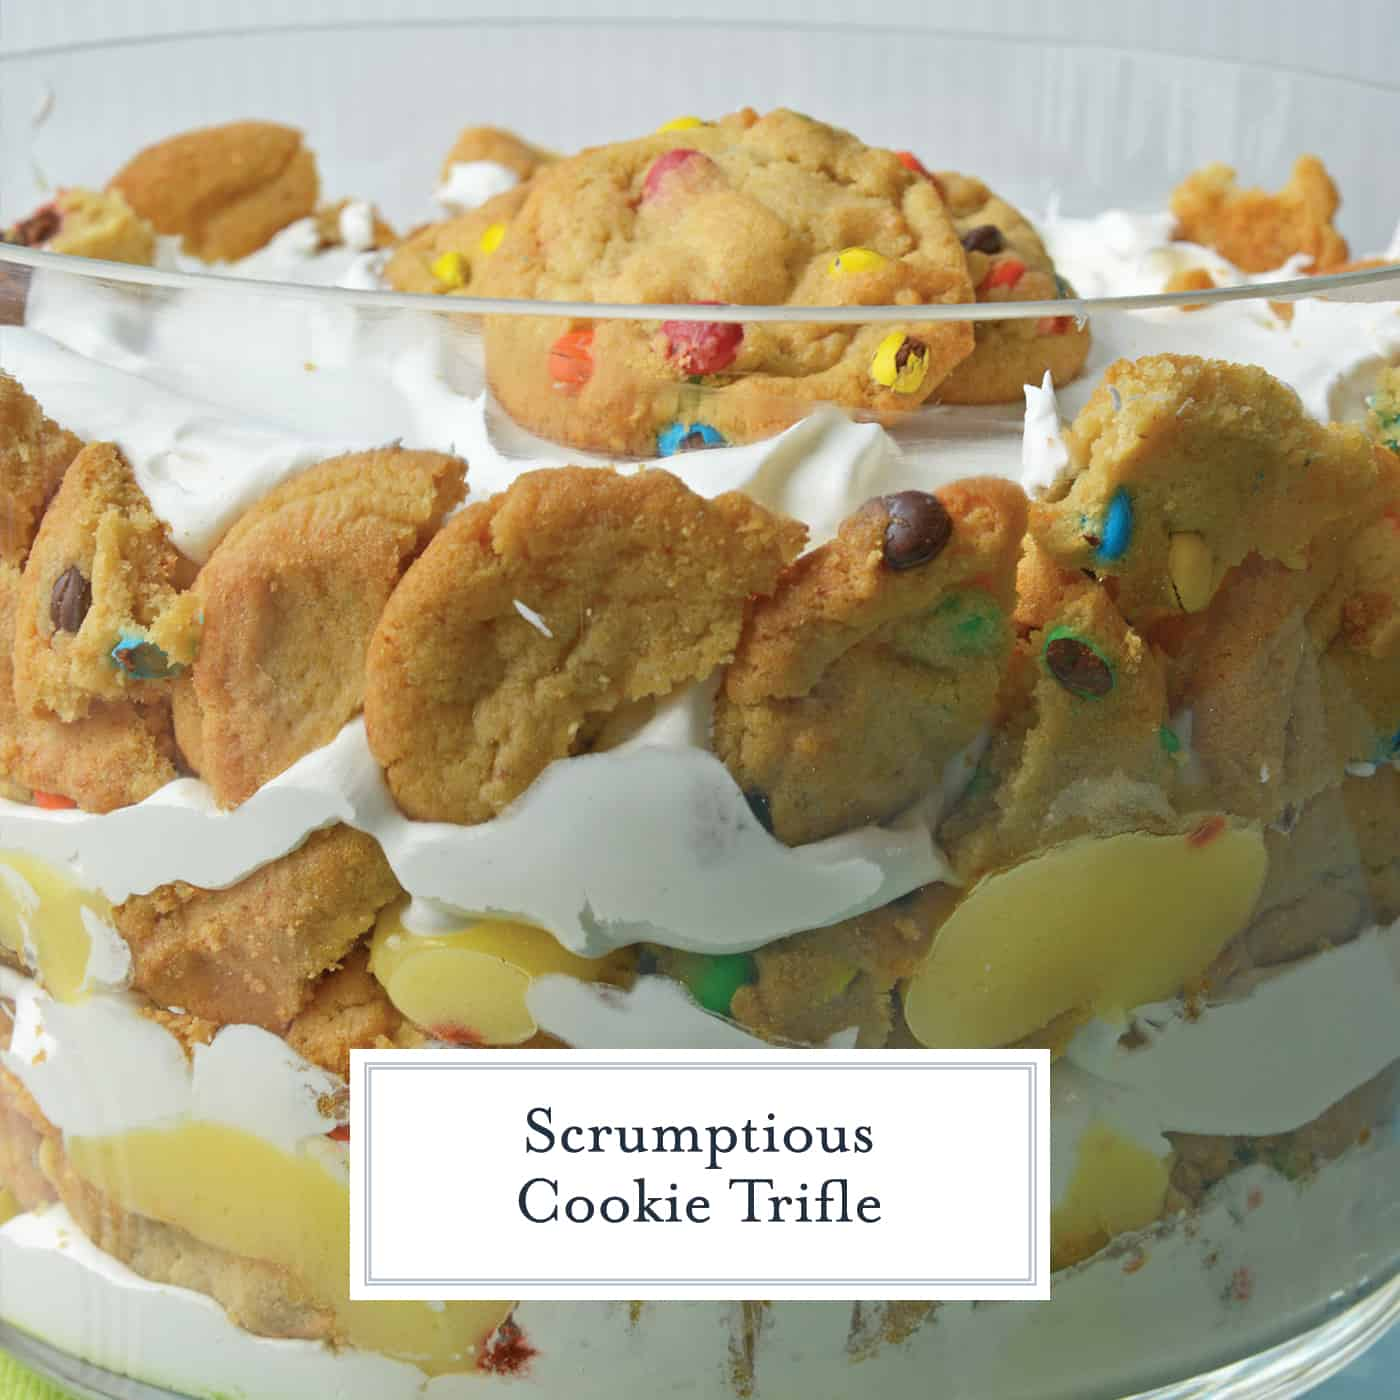 This Cookie Trifle recipe is a super easy trifle recipe that only uses 3 ingredients! Chocolate and butterscotch chip cookies, layered with vanilla custard and whipped cream! #cookiebomb #cookietrifle #triflerecipe www.savoryexperiments.com